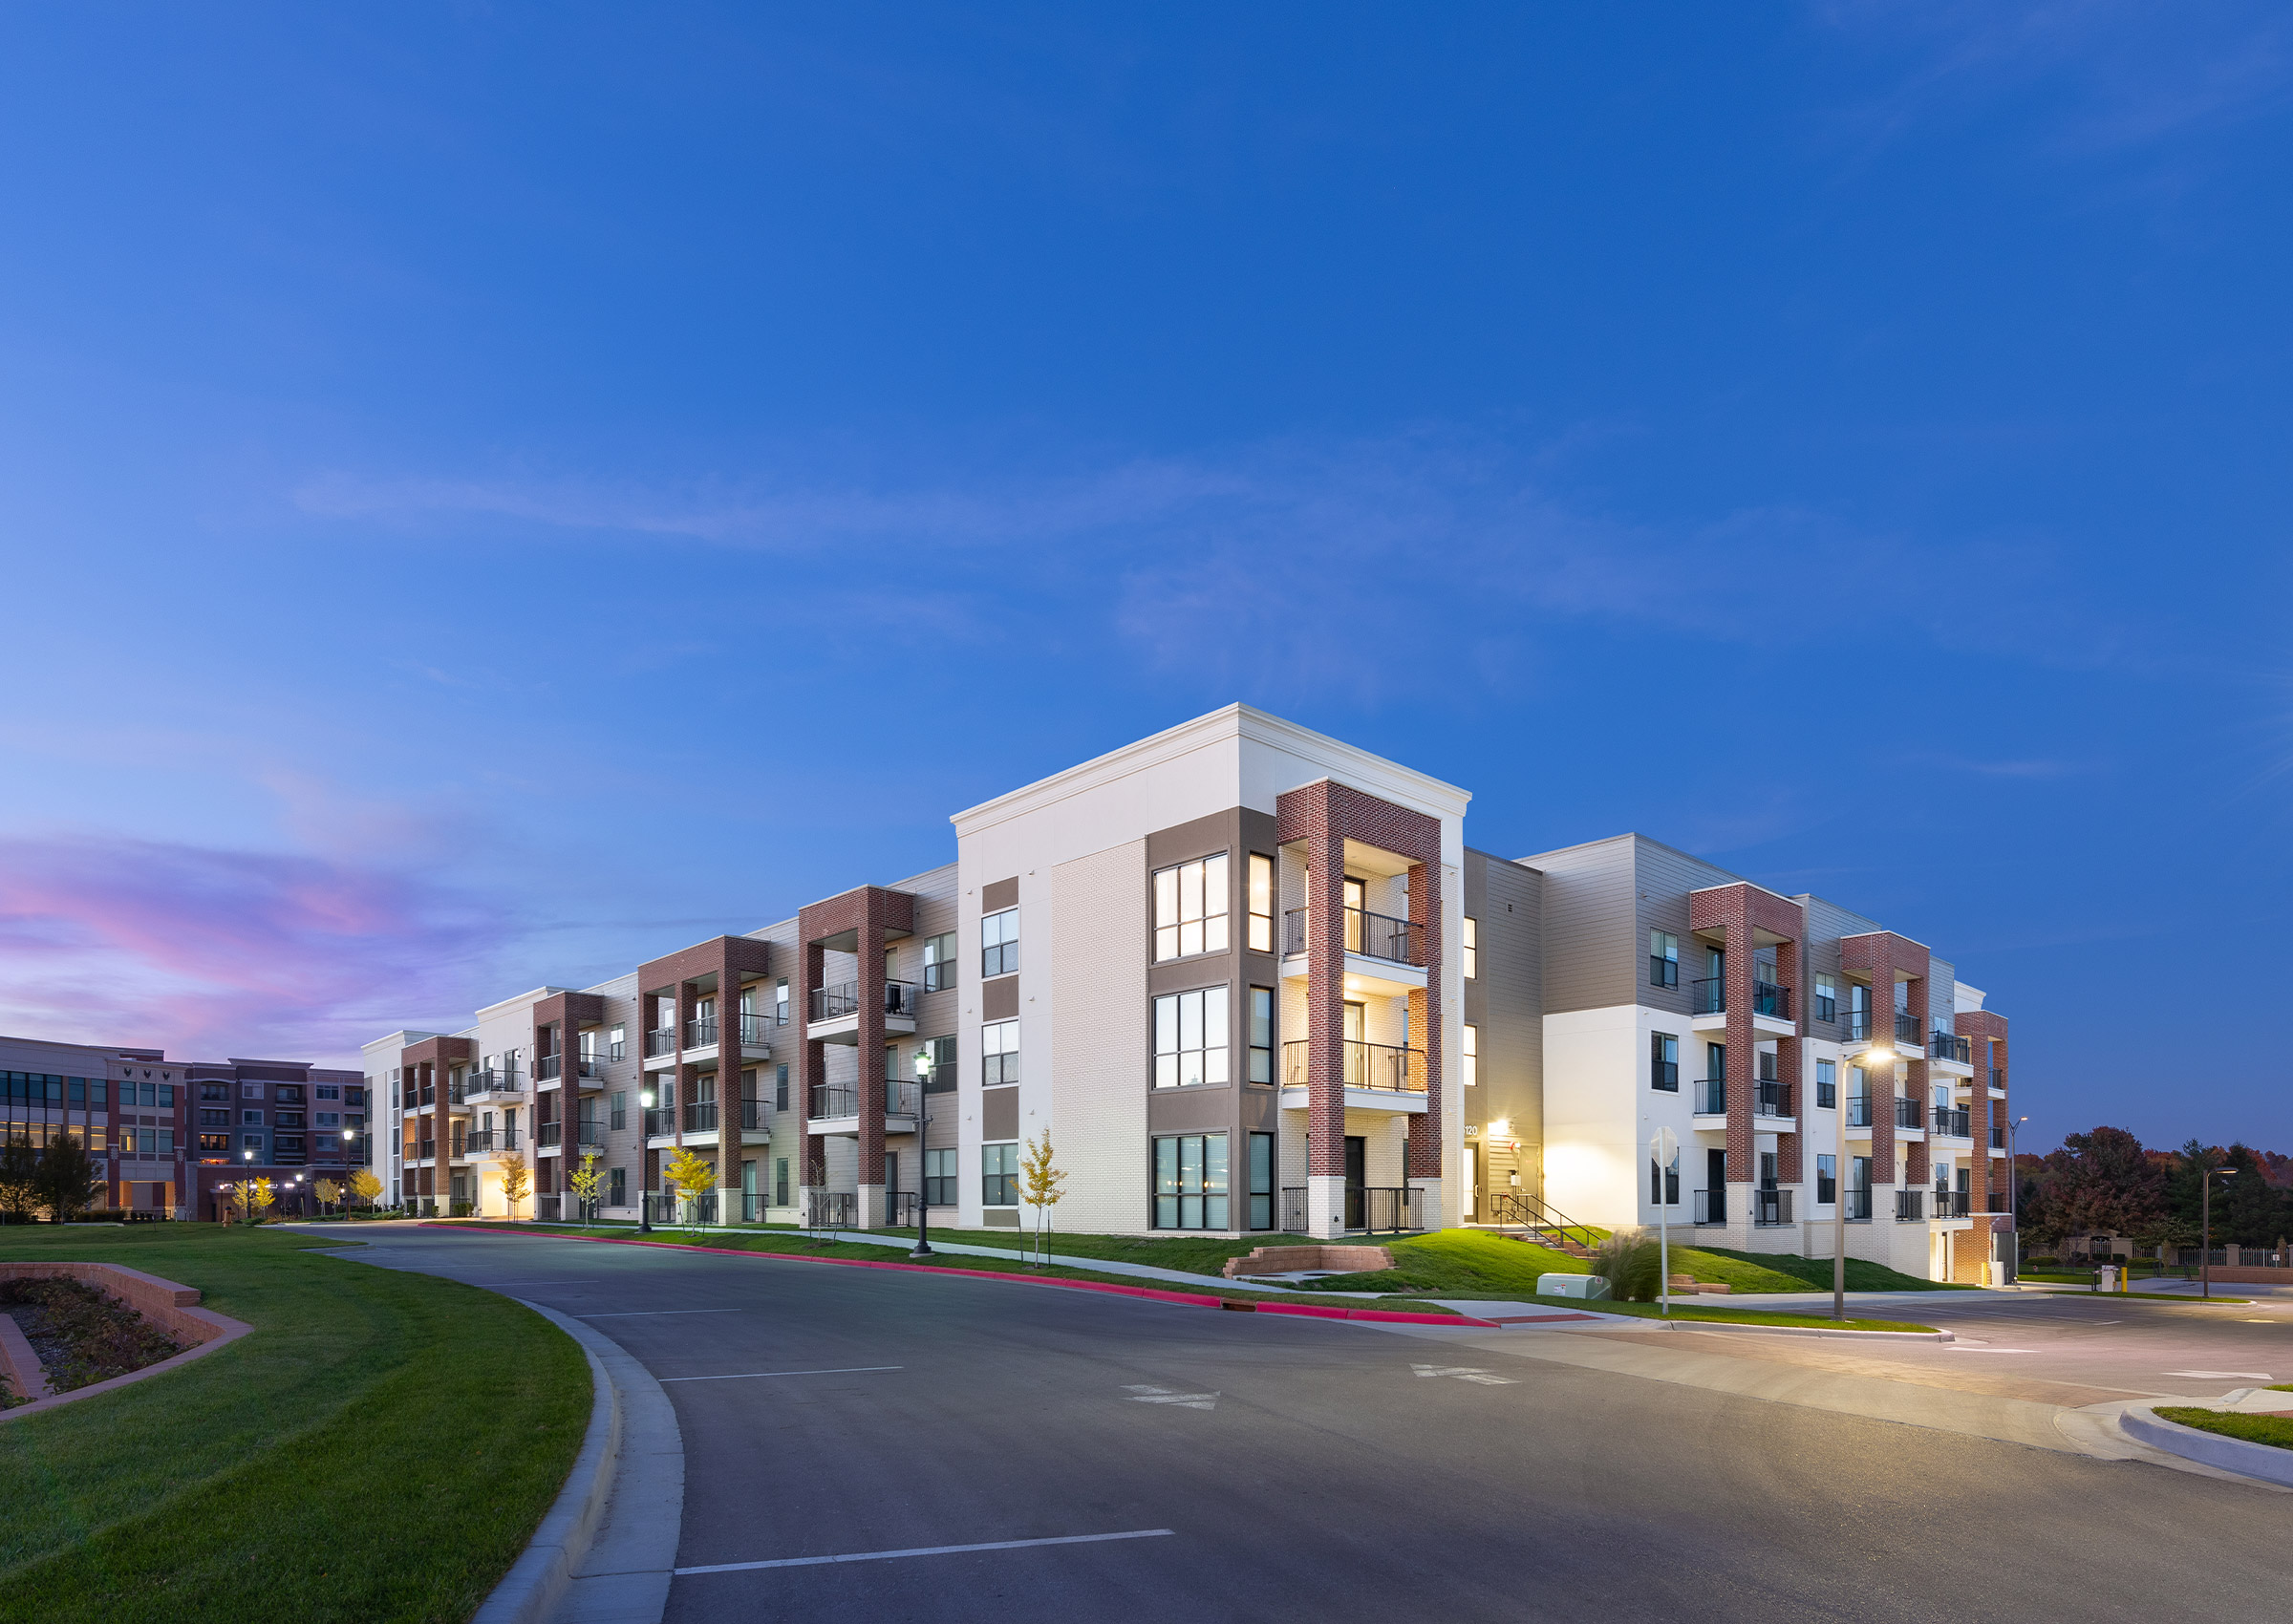 Park Place East – Apartments & Parking Garage